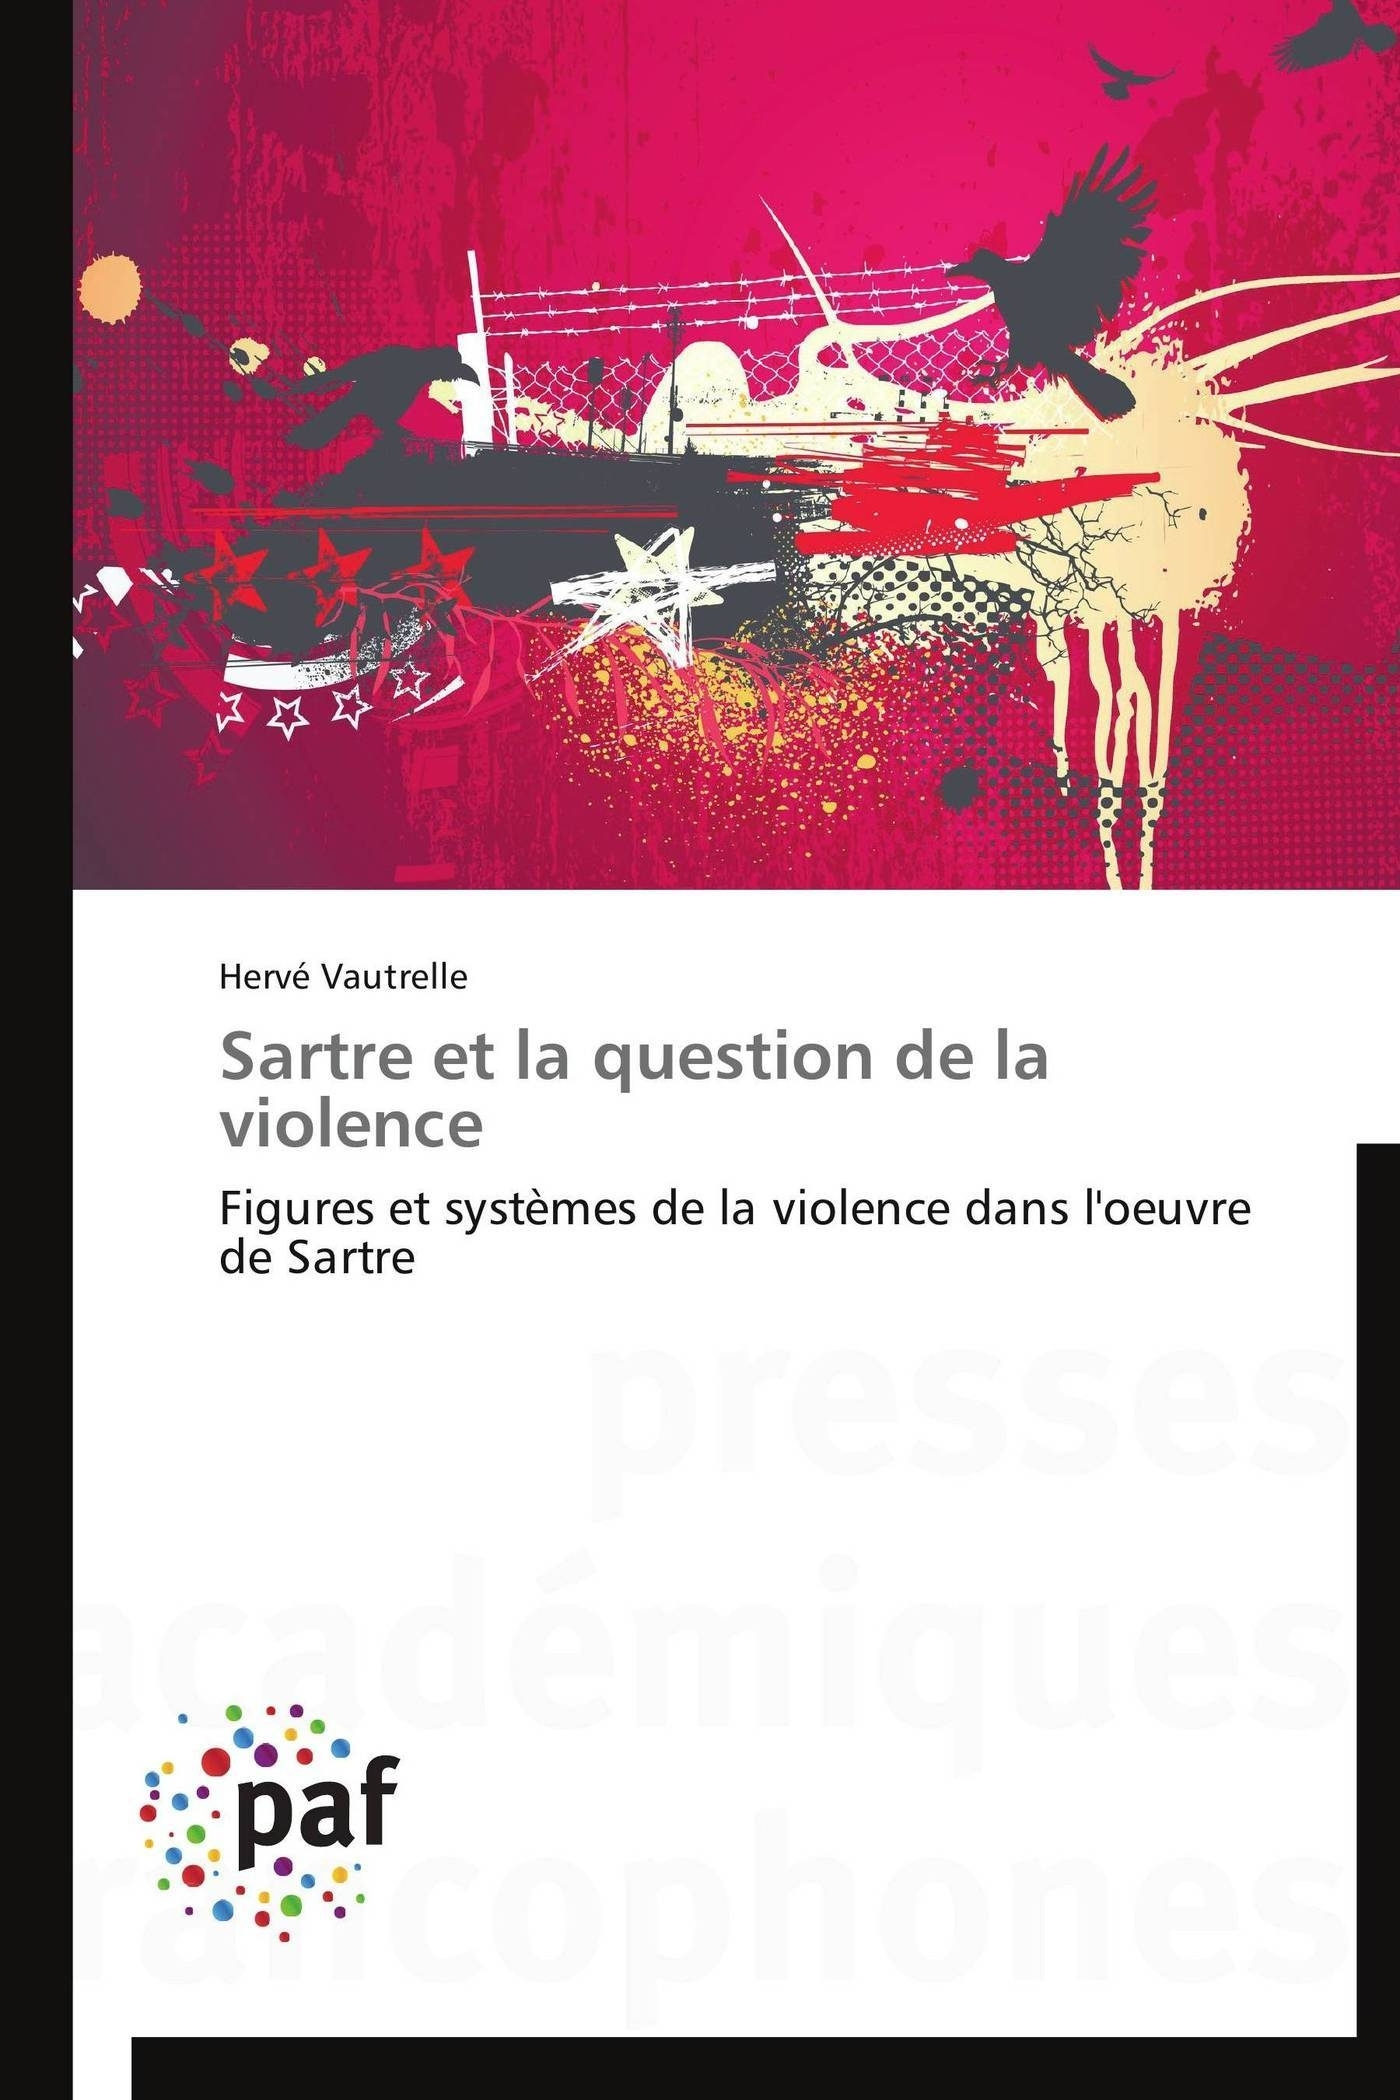 SARTRE ET LA QUESTION DE LA VIOLENCE